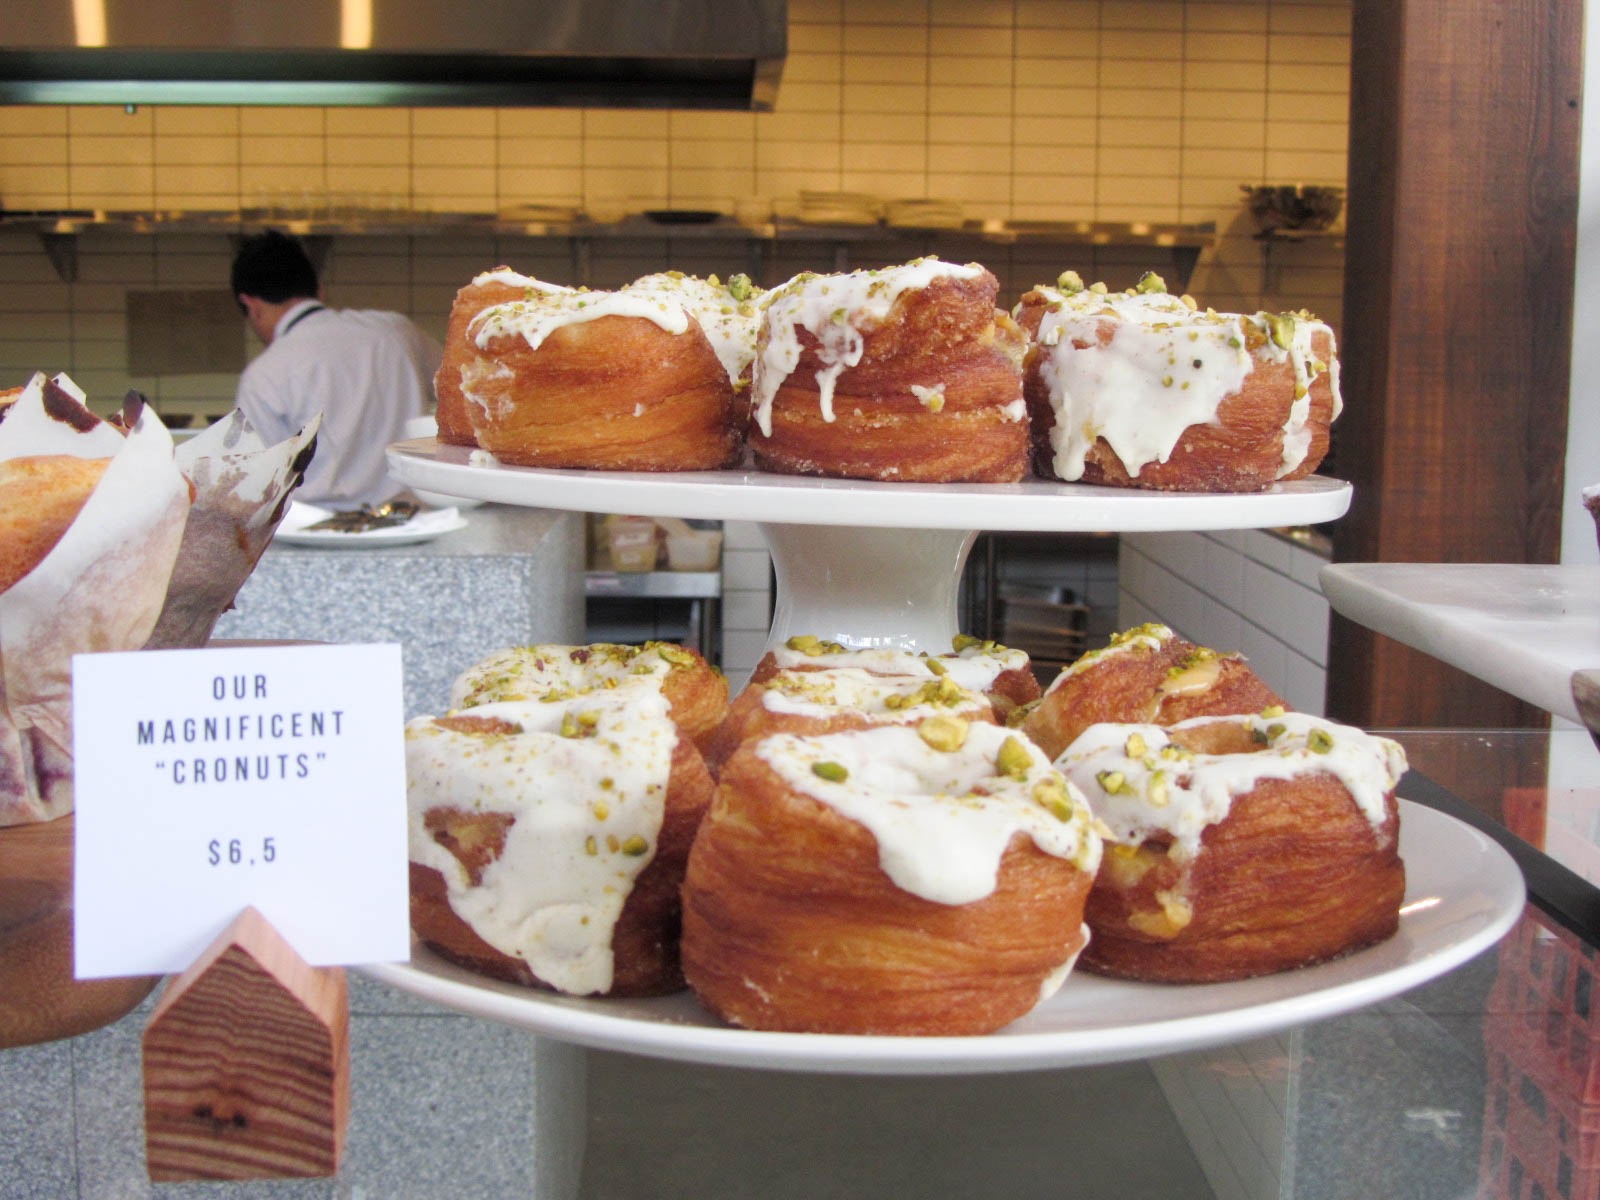 The Cronut - a merging of a croissant and a donut